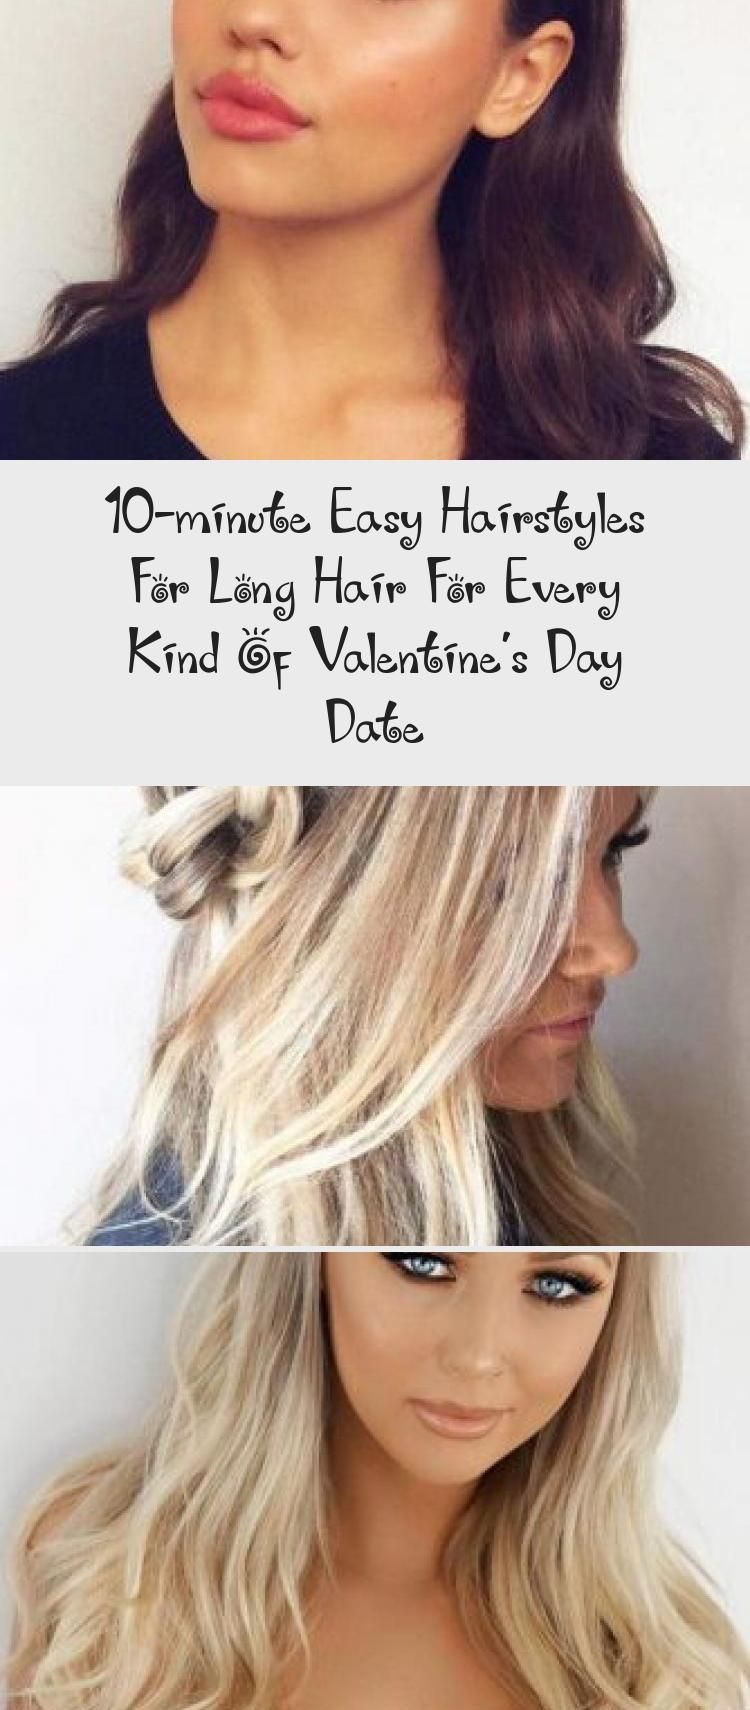 10-minute Easy Hairstyles For Long Hair For Every Kind Of Valentine's Day Date – Wedding